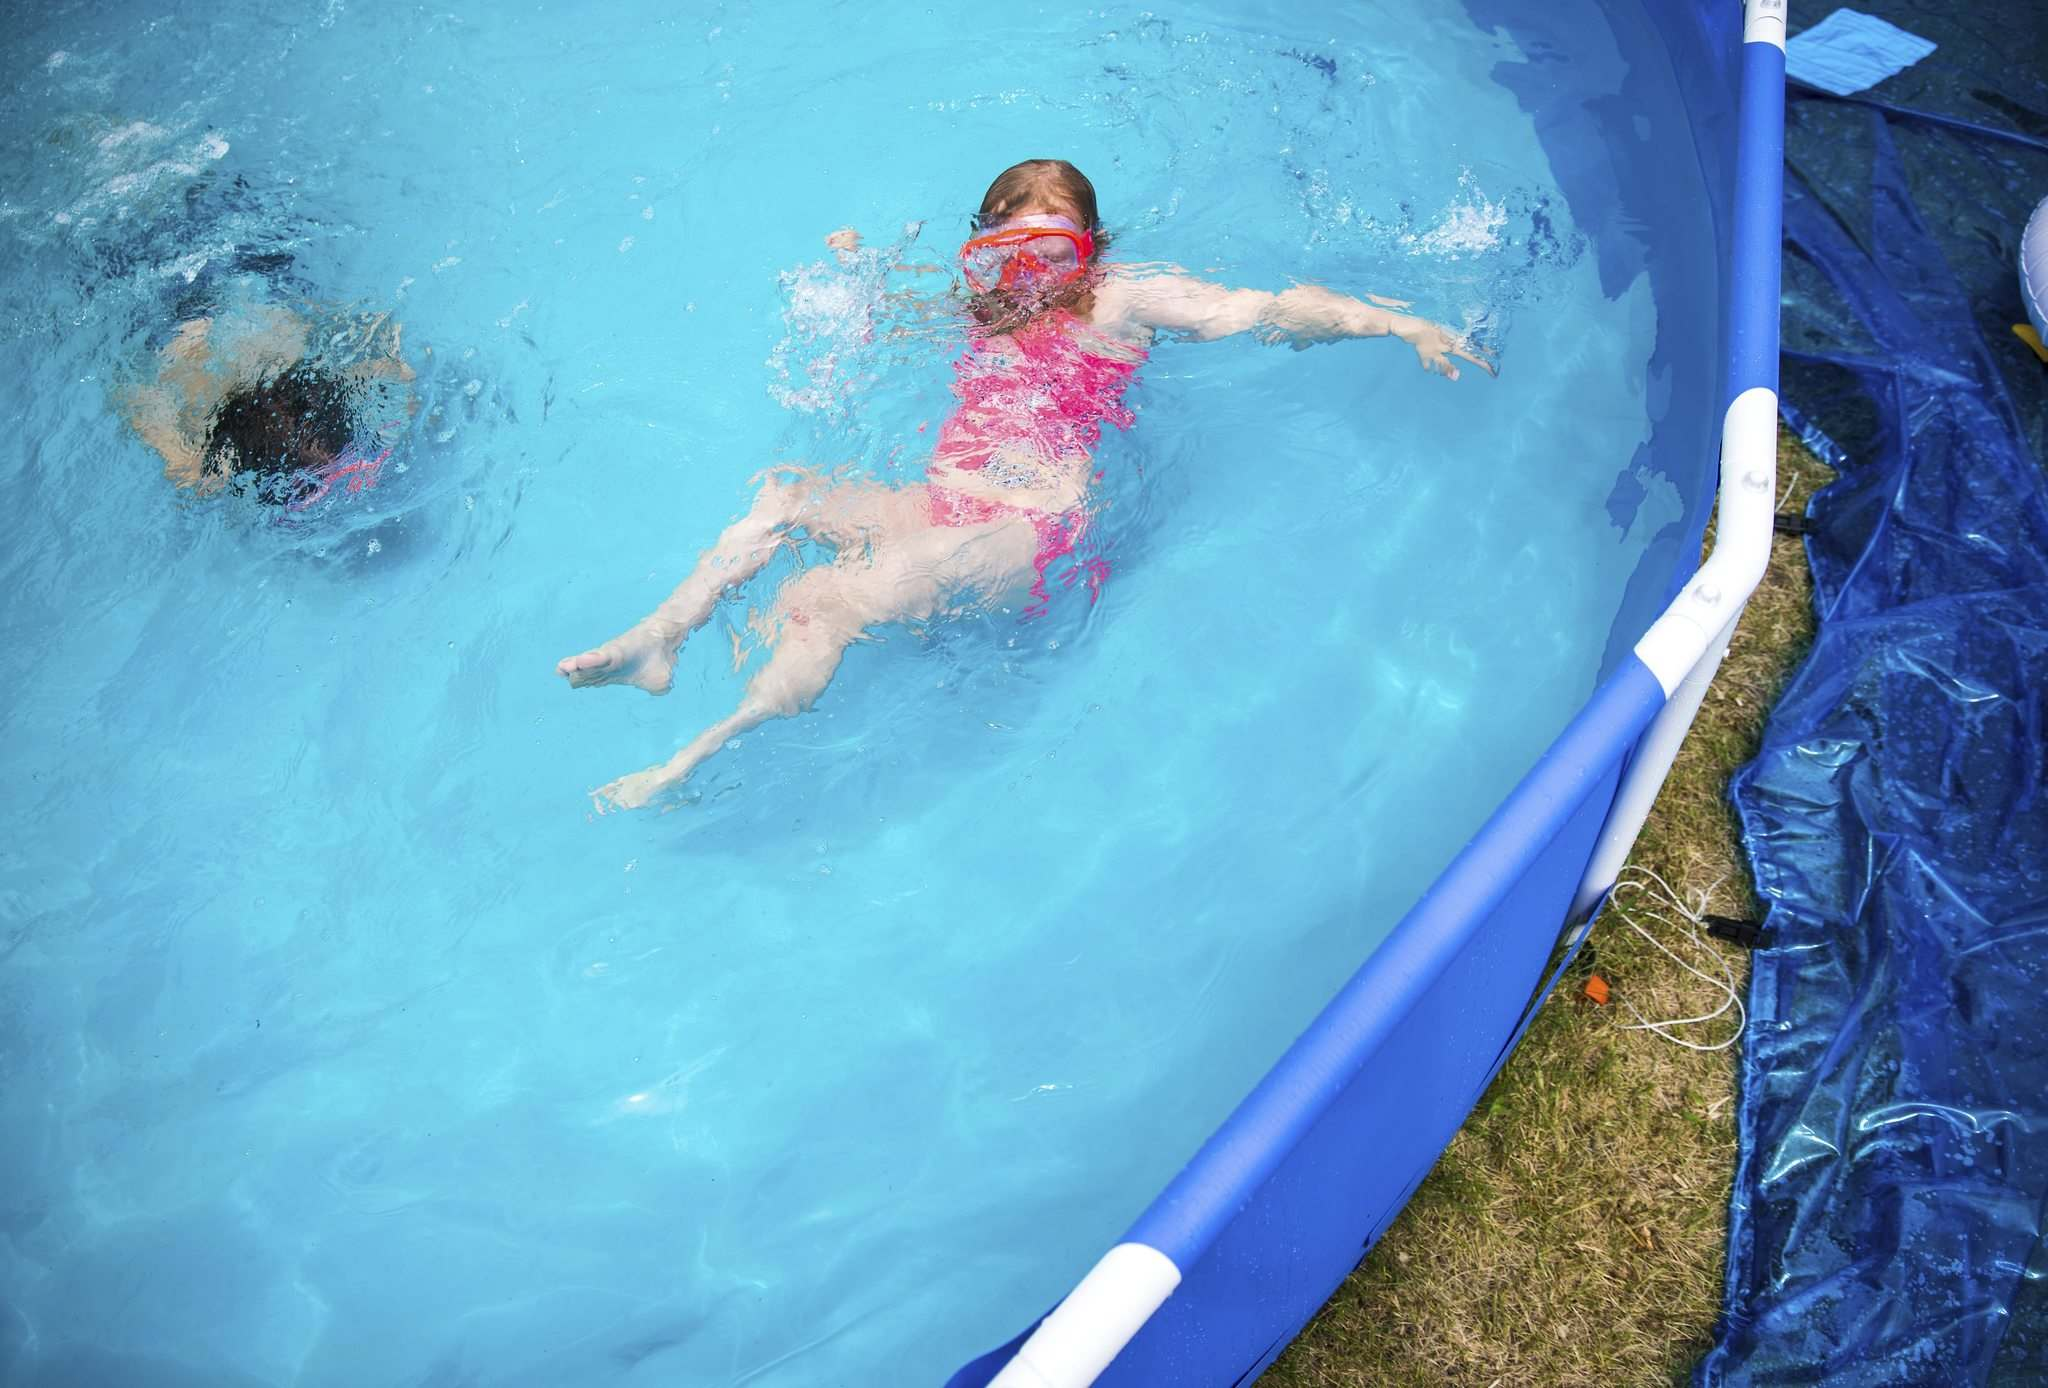 Julie Kay and her brother Liam enjoy an afternoon playing in their recently installed above-ground pool. (Mikaela MacKenzie / Winnipeg Free Press)